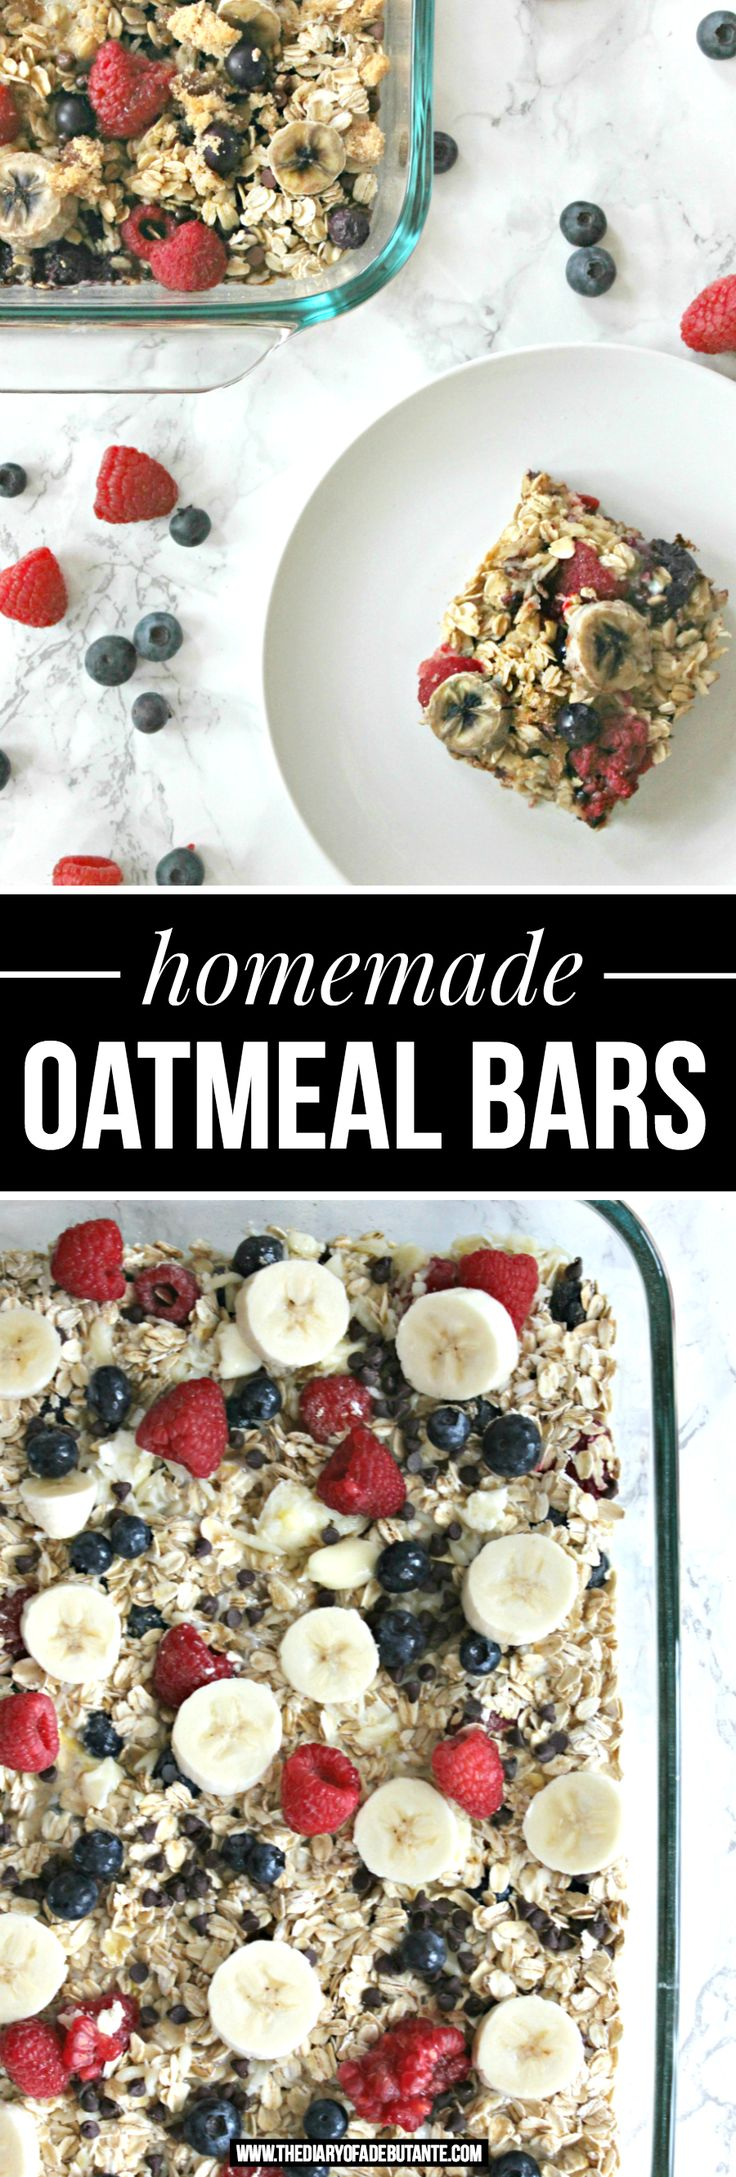 These easy homemade oatmeal bars are PERFECT for meal prepping! They can keep in the fridge for over a week | Easy Breakfast Recipe for Homemade Oatmeal Bars